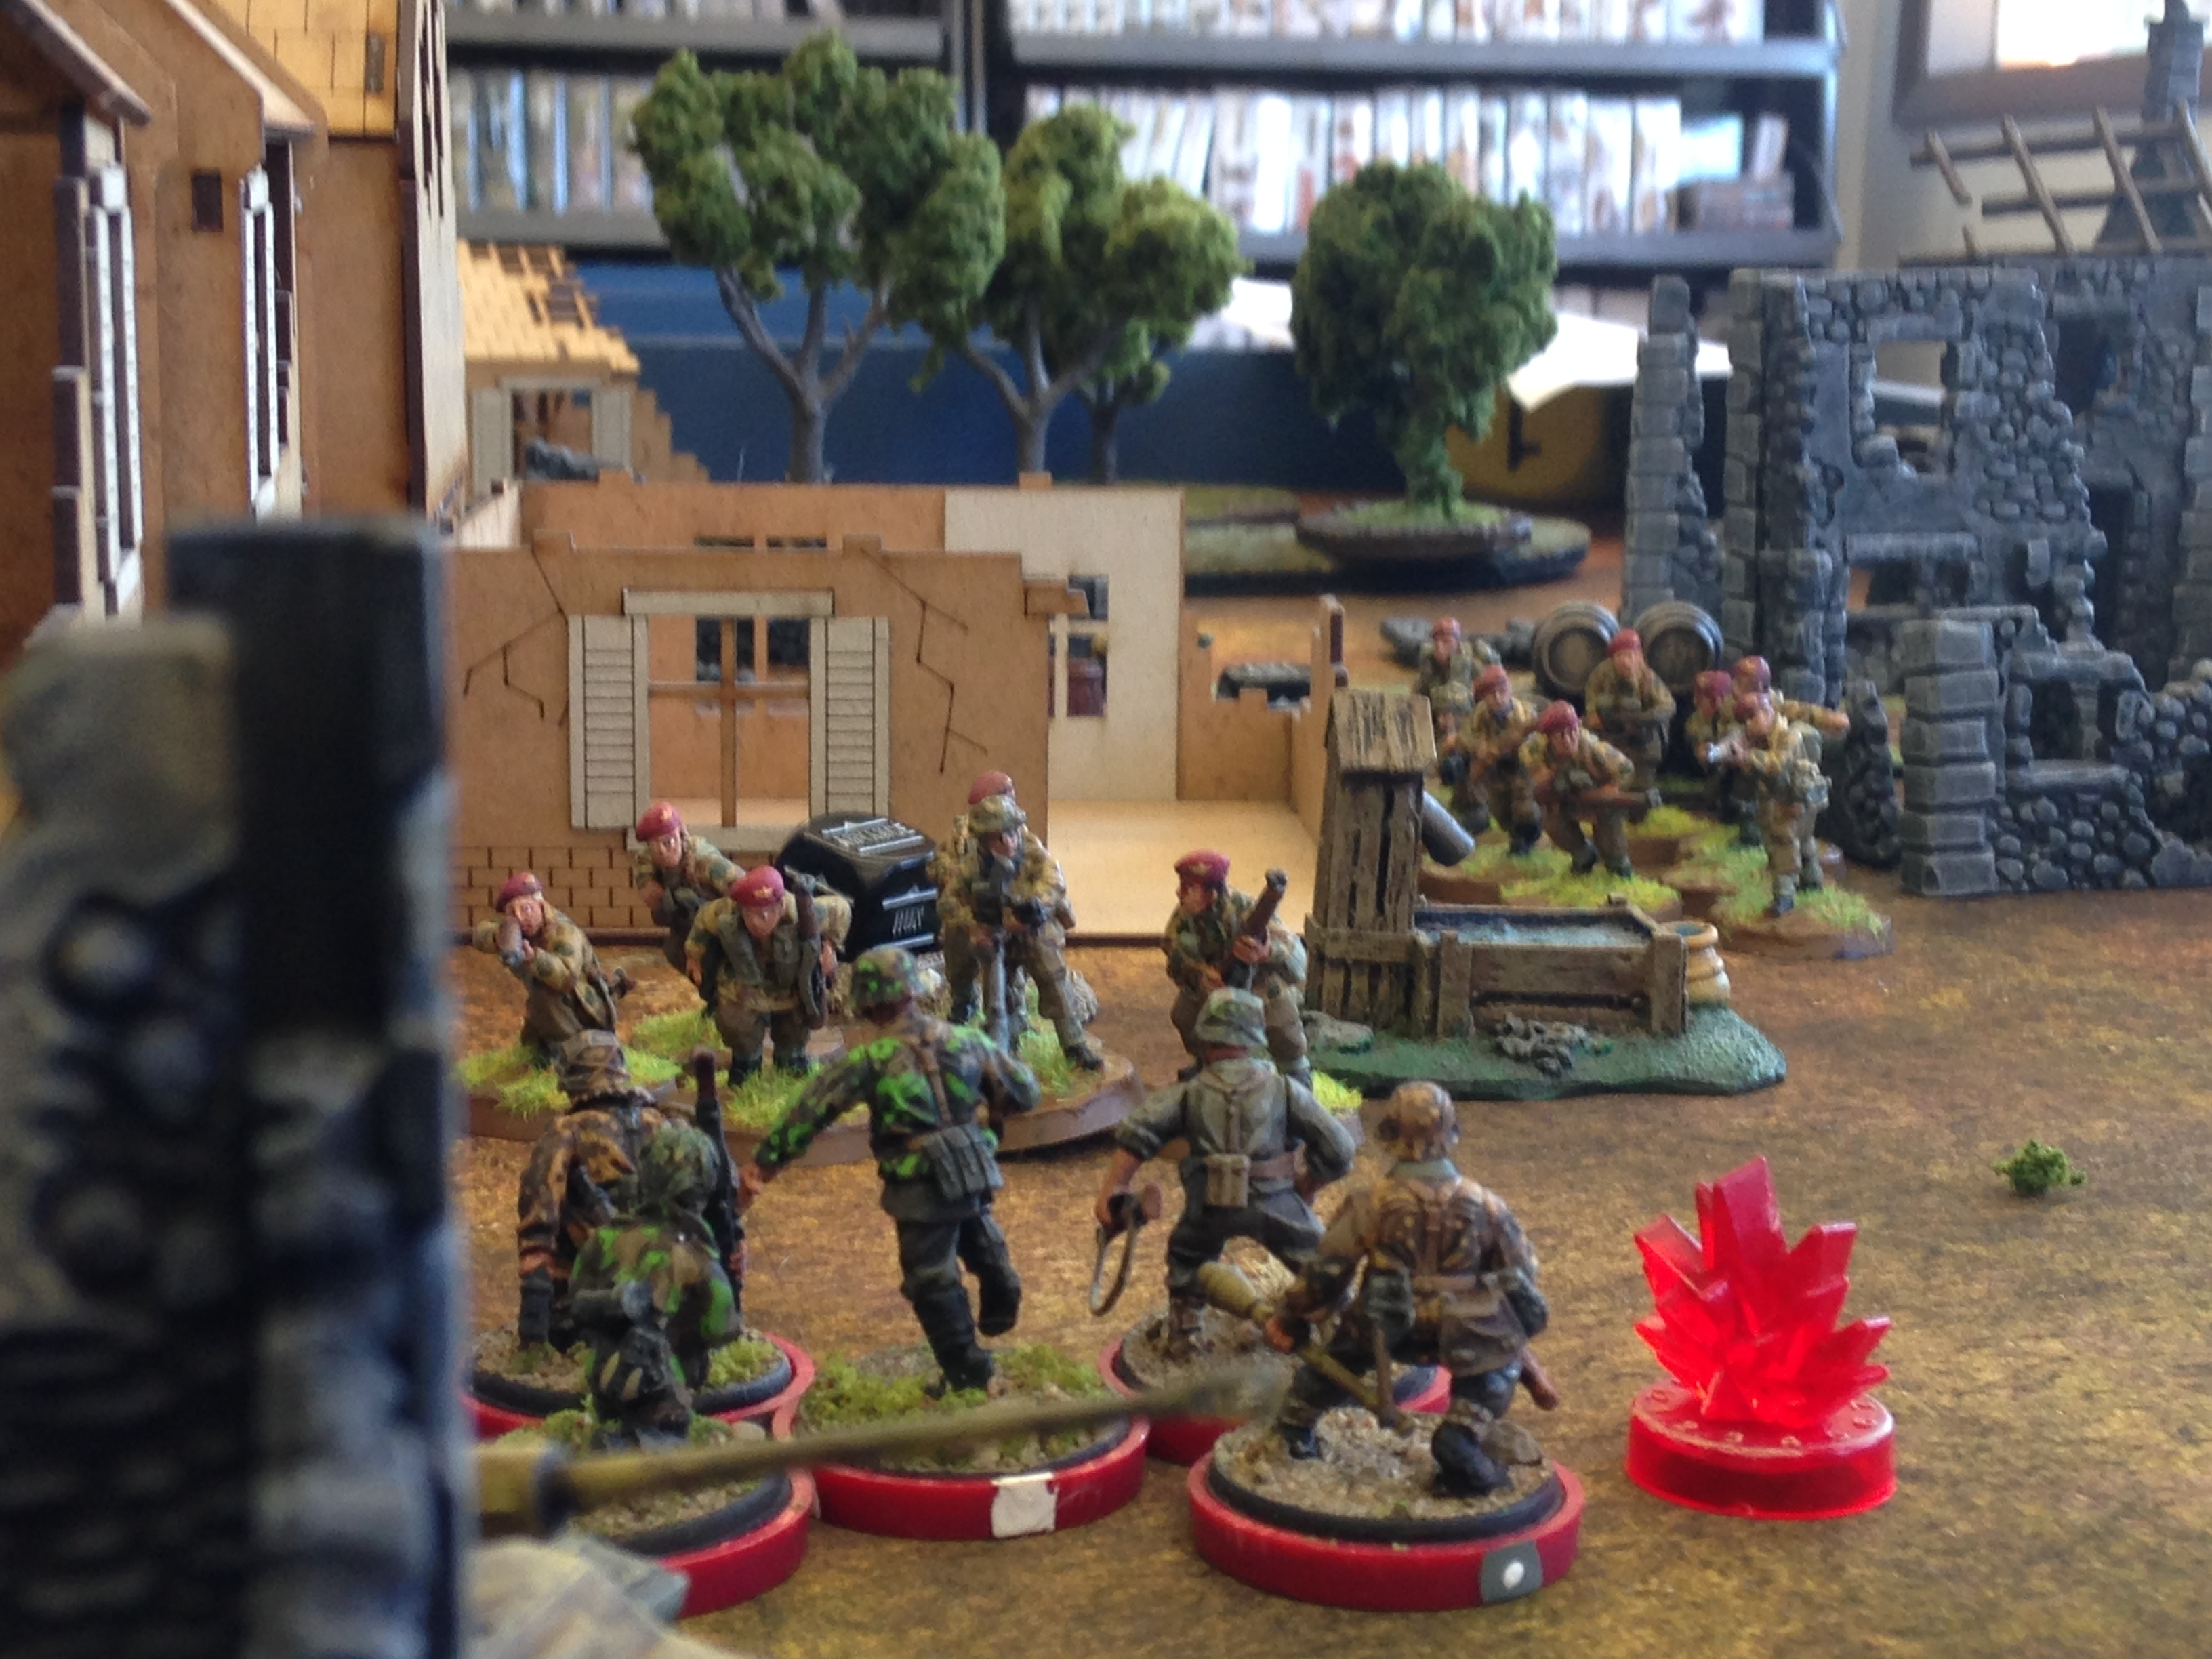 Silent Wings versus Hessler's Gas Guzzlers in a fierce infantry engagement